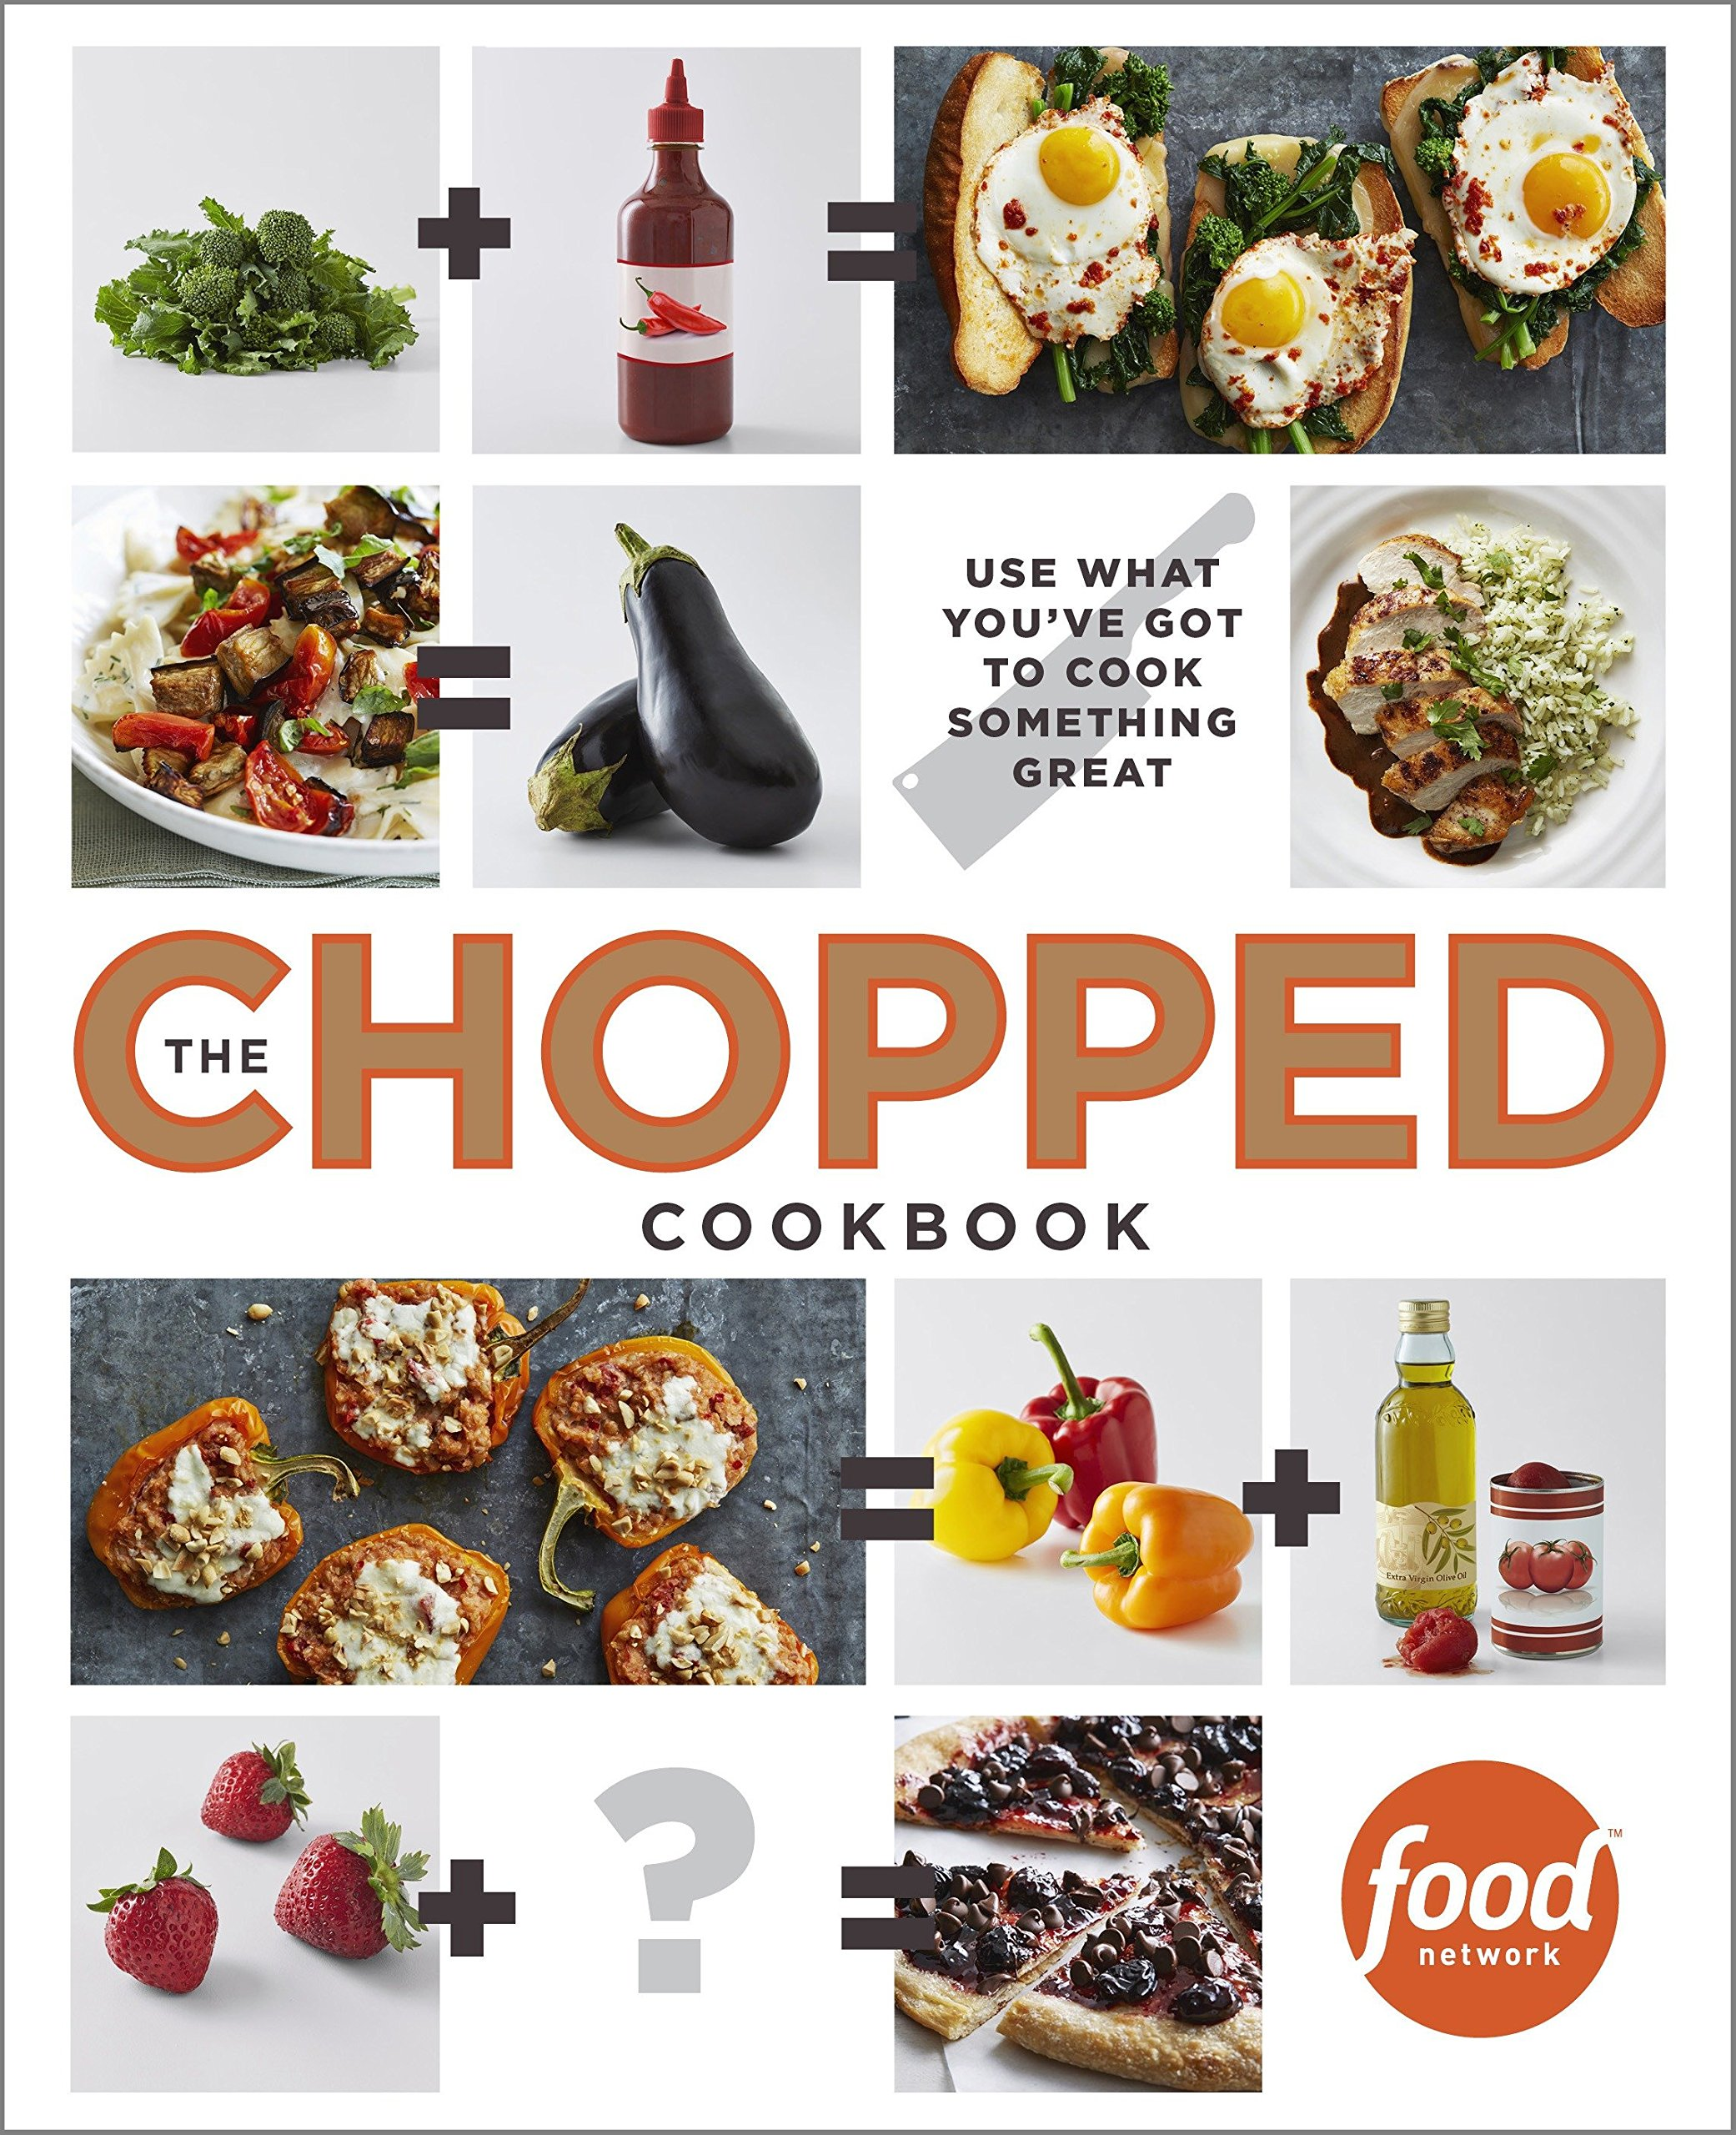 The Chopped Cookbook Use What You Ve Got To Cook Something Great Food Network Kitchen 9780770435004 Amazon Com Books